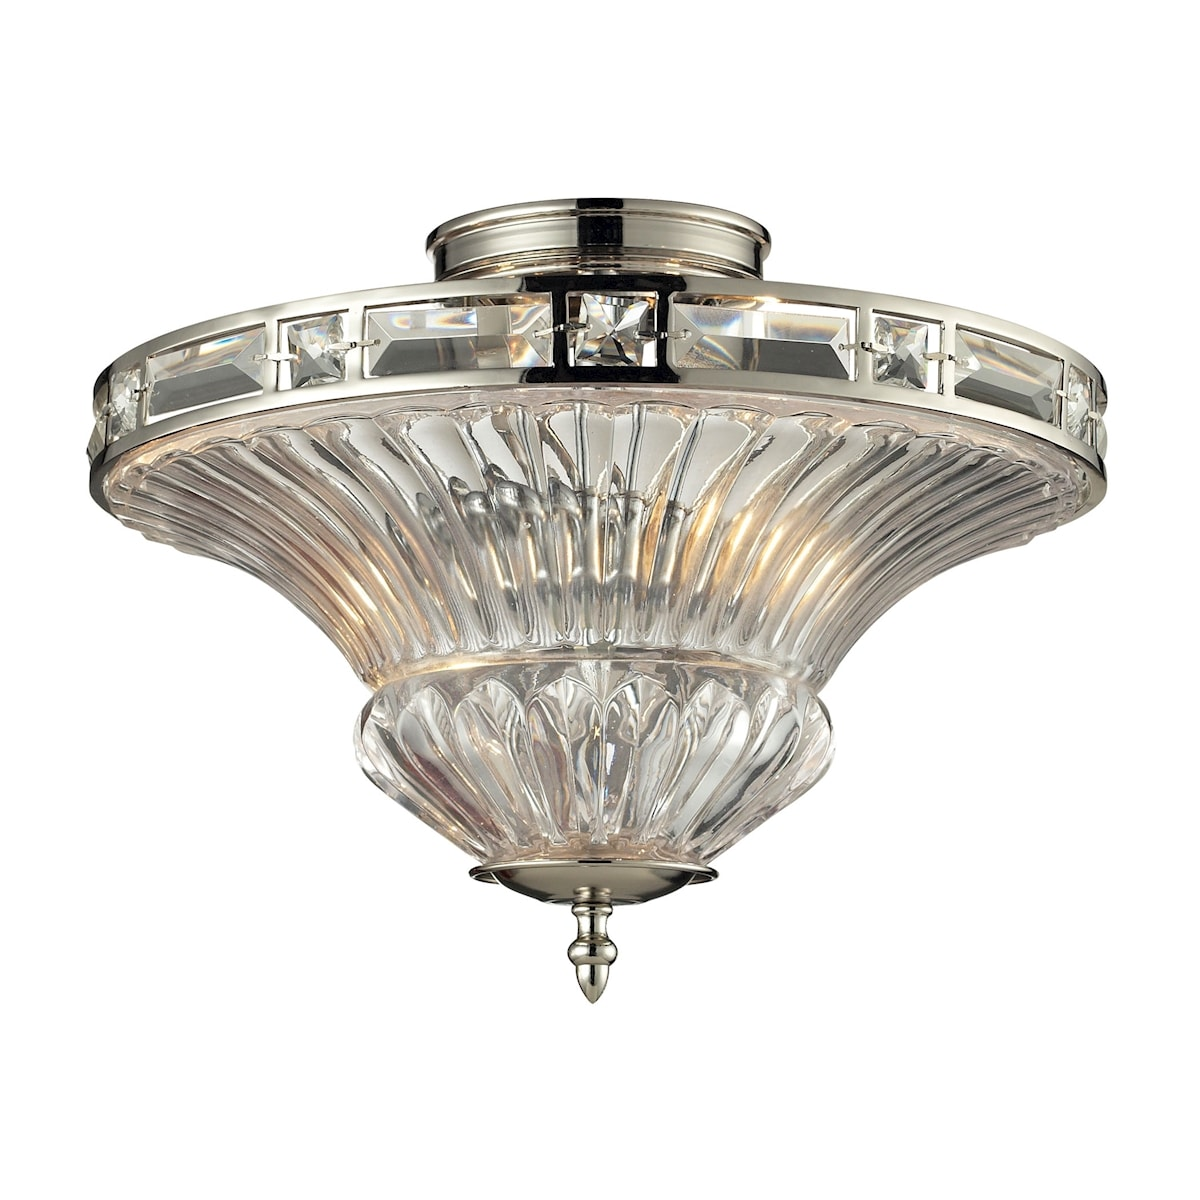 EL-31500/2_Aubree Collection 2 light semi flush in Polished Nickel